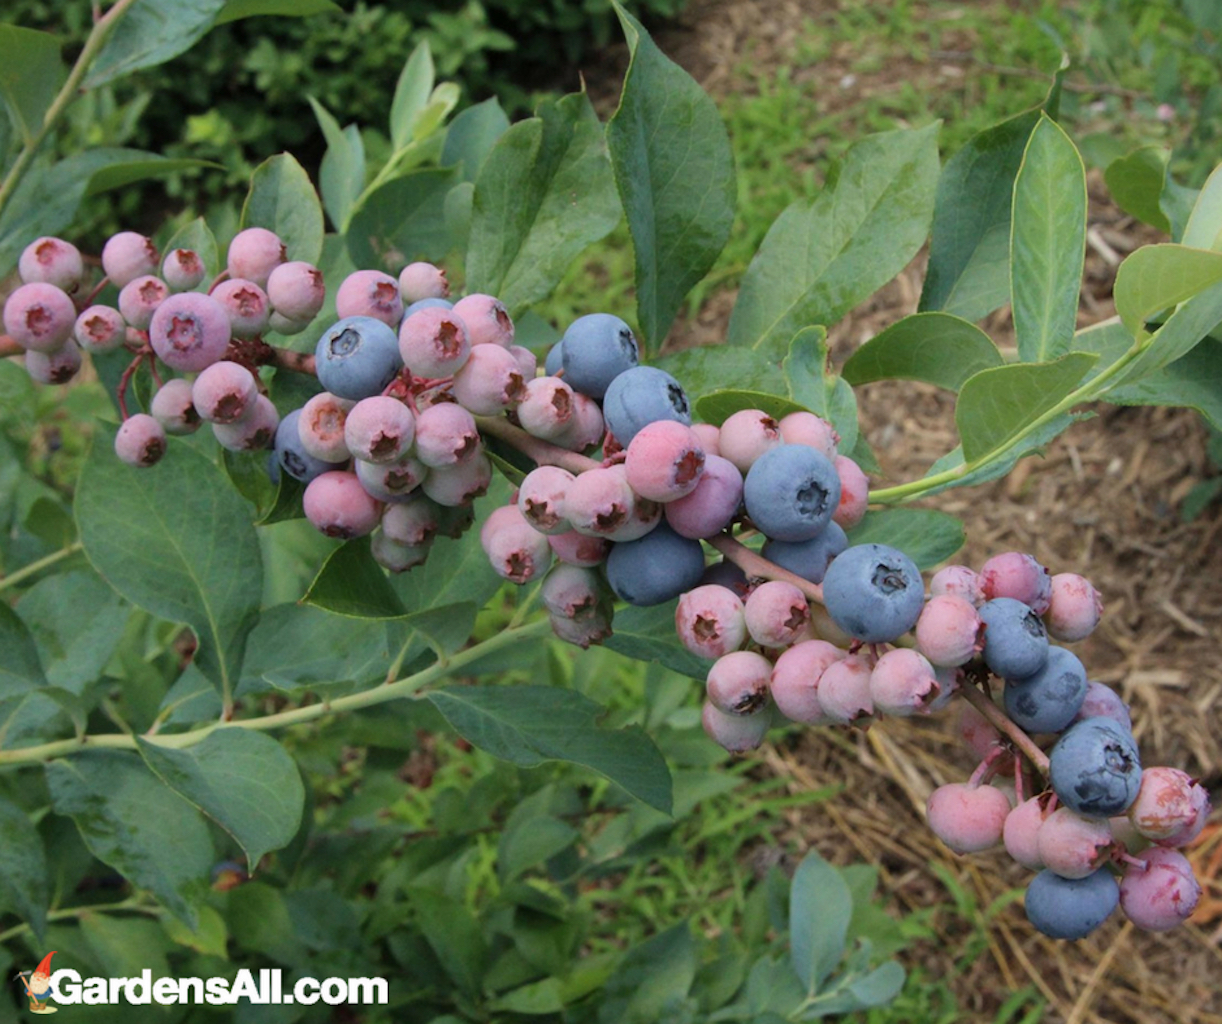 edible landscaping, blueberries